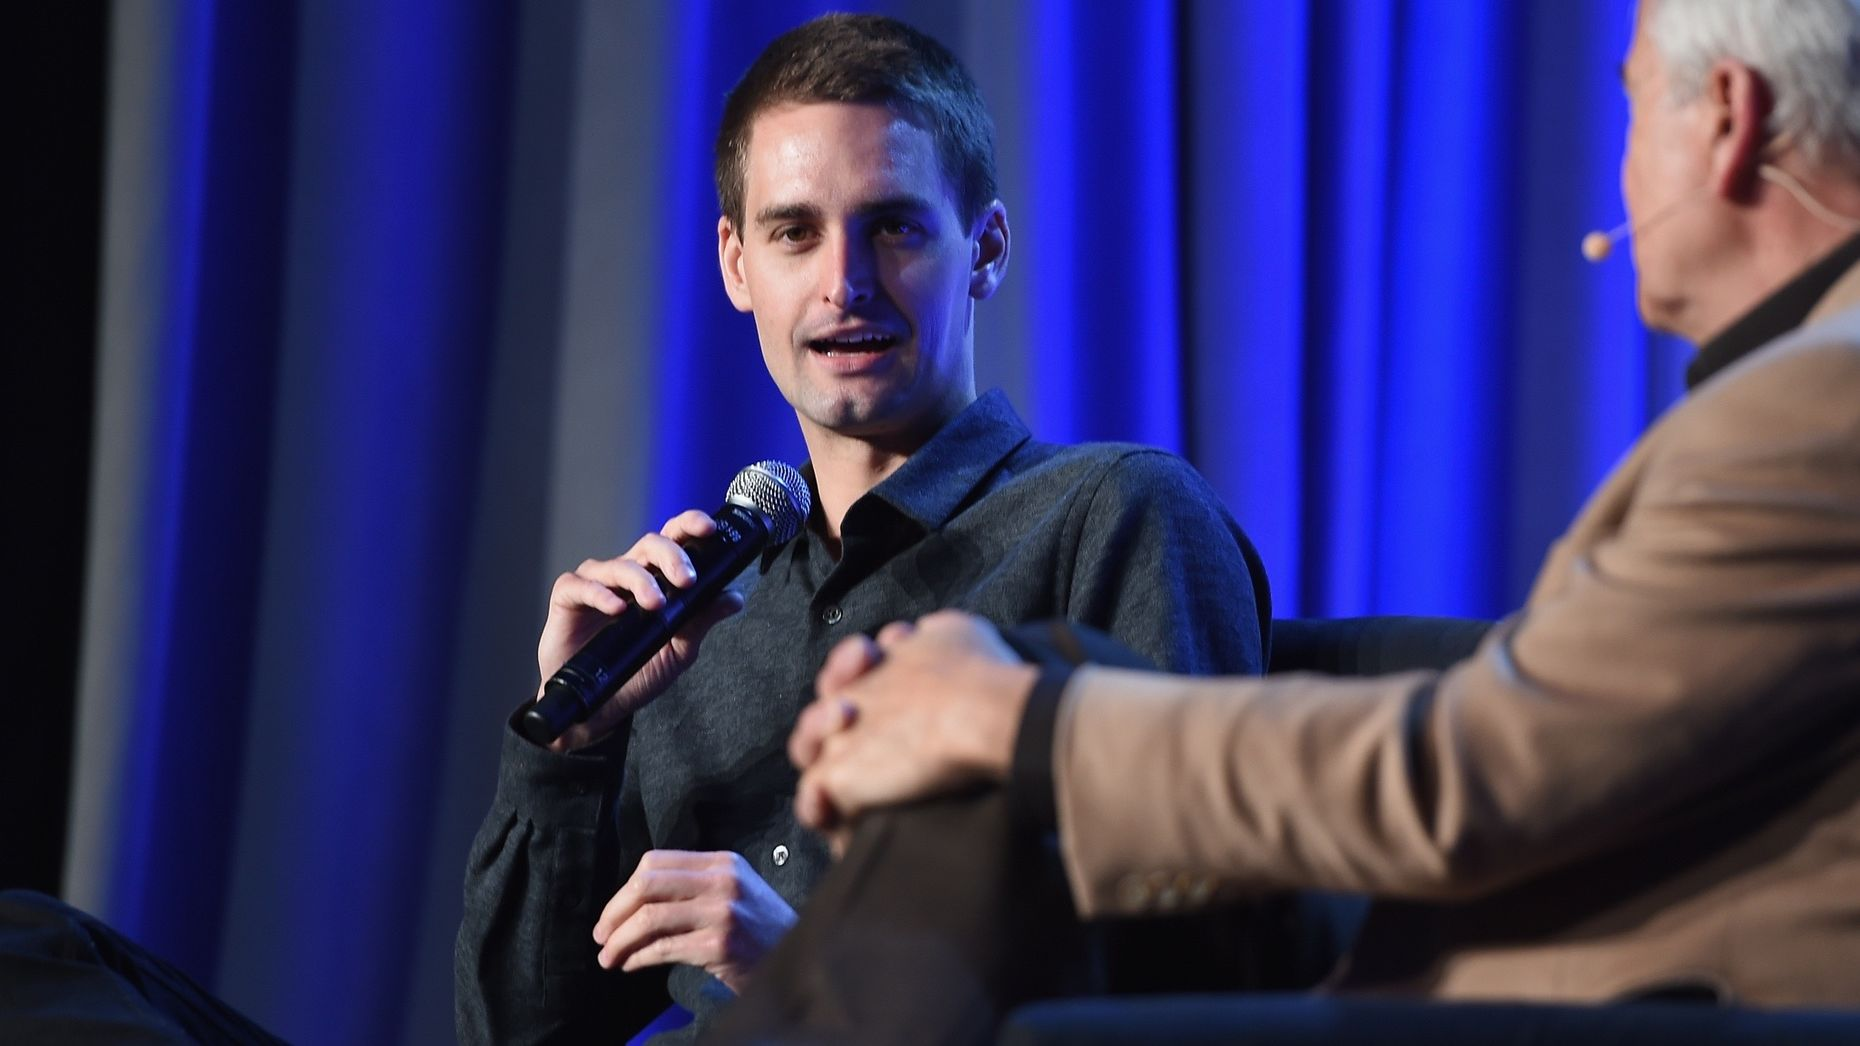 Evan Spiegel, left. Photo by Larry Busacca/Getty Images.